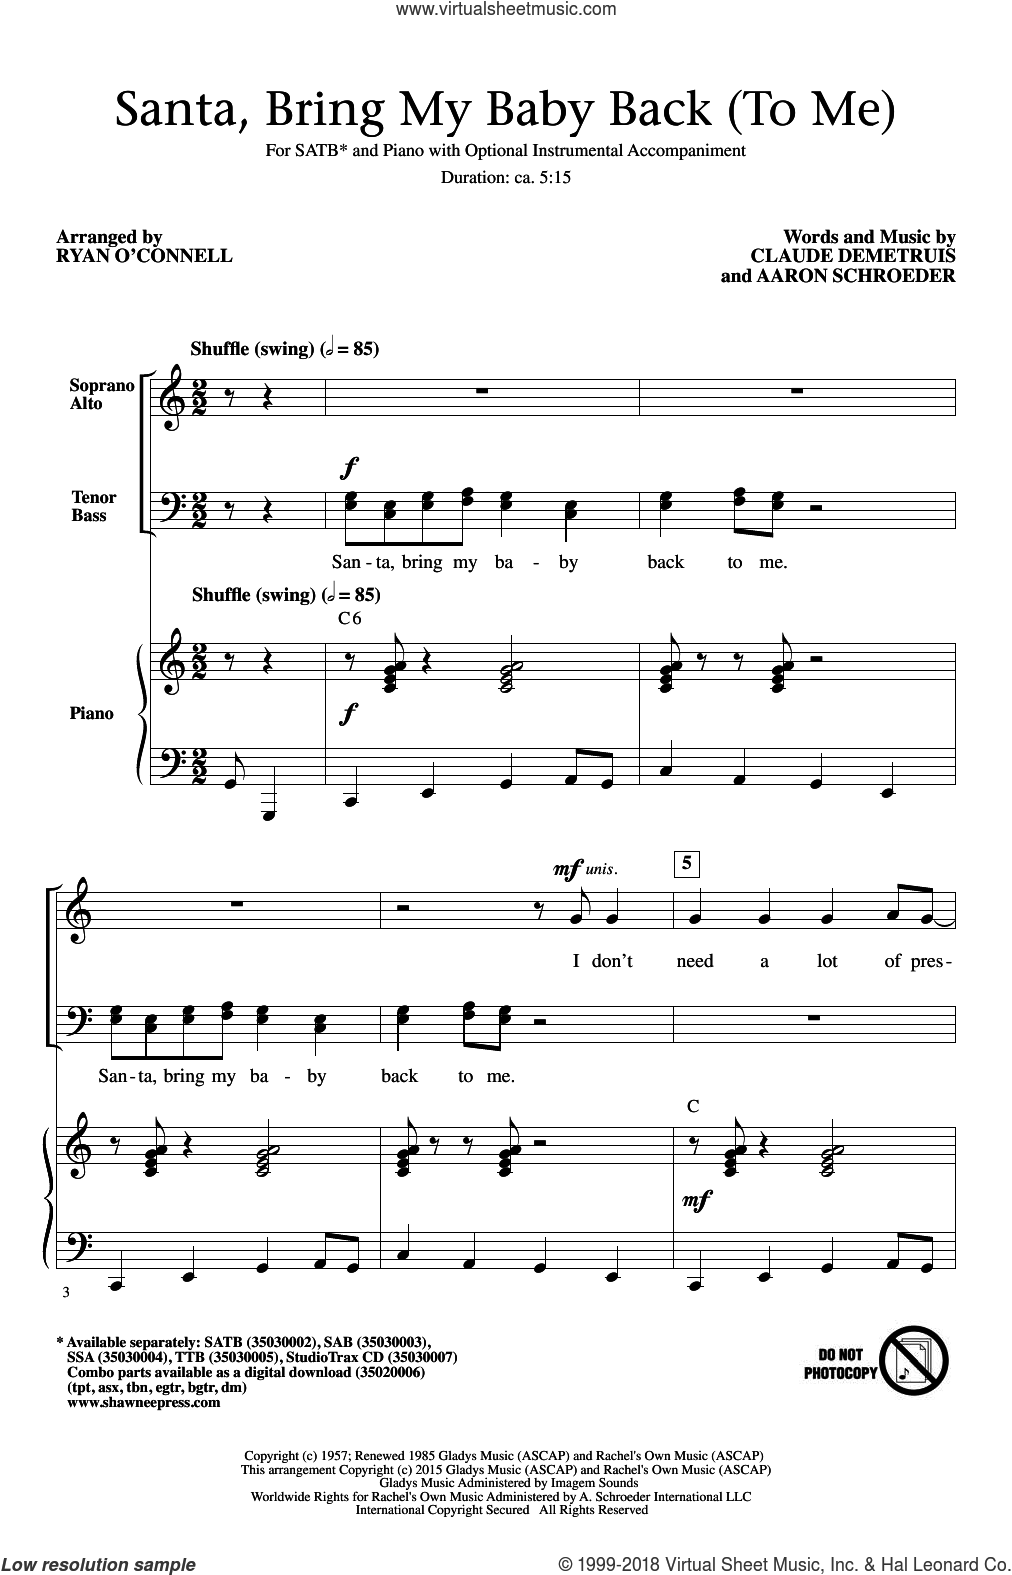 Santa, Bring My Baby Back (To Me) sheet music for choir (SATB: soprano, alto, tenor, bass) by Aaron Schroeder, Elvis Presley and Claude DeMetruis, intermediate. Score Image Preview.